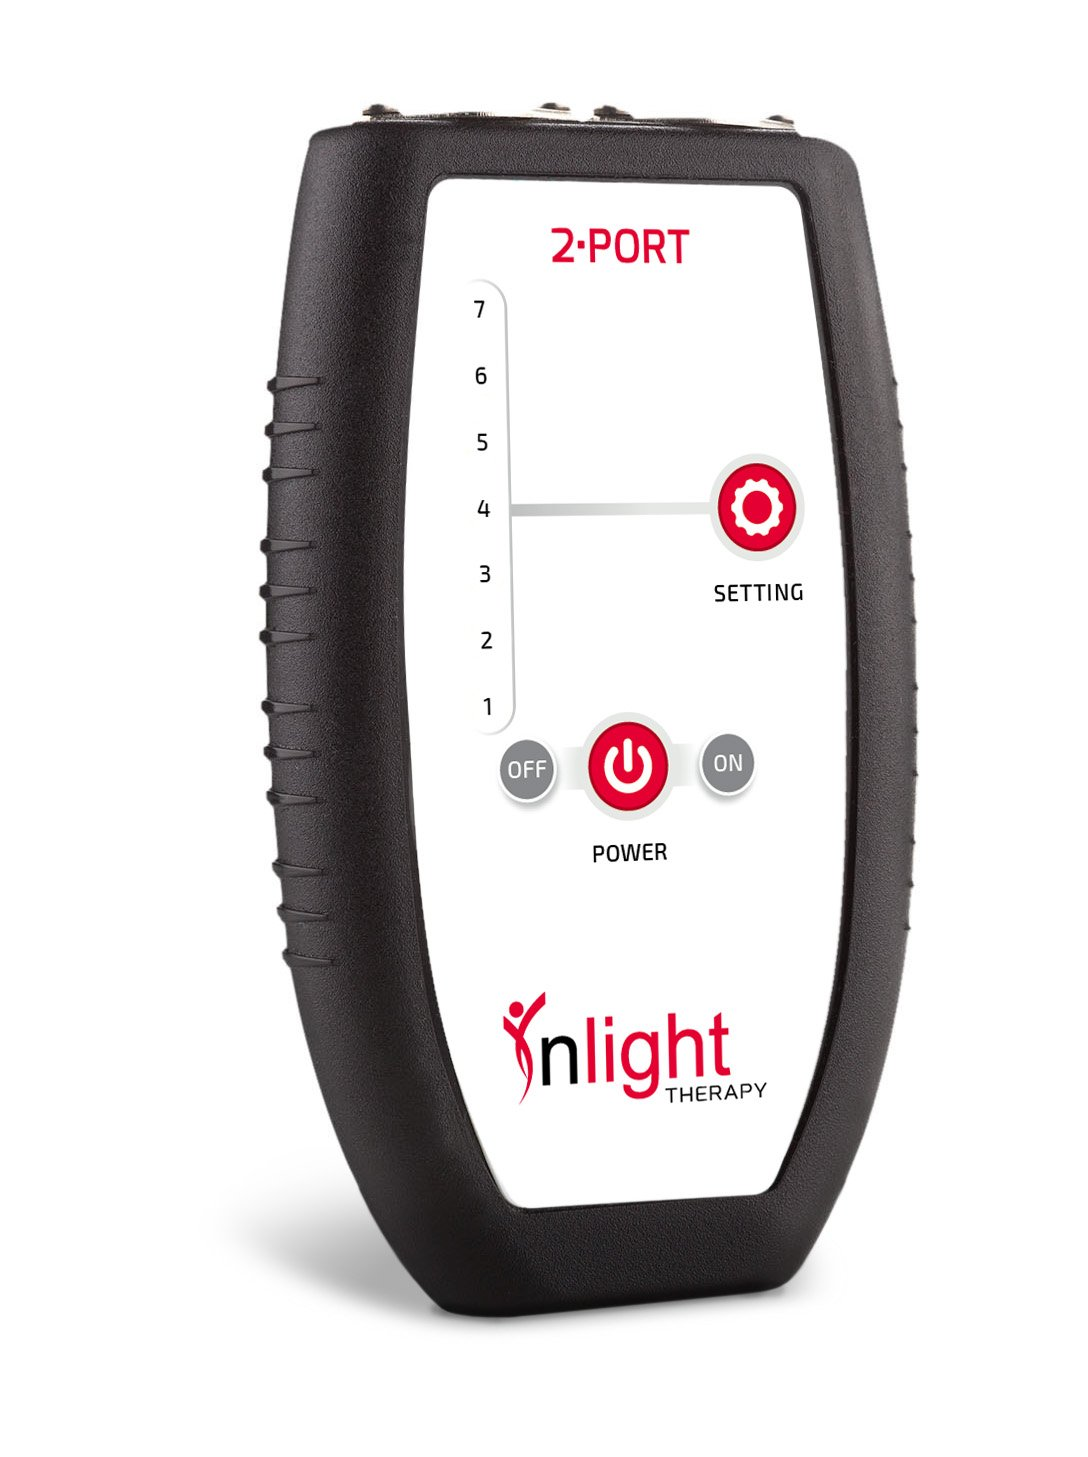 Inlight Therapy Inc. LED light system 2 port controller